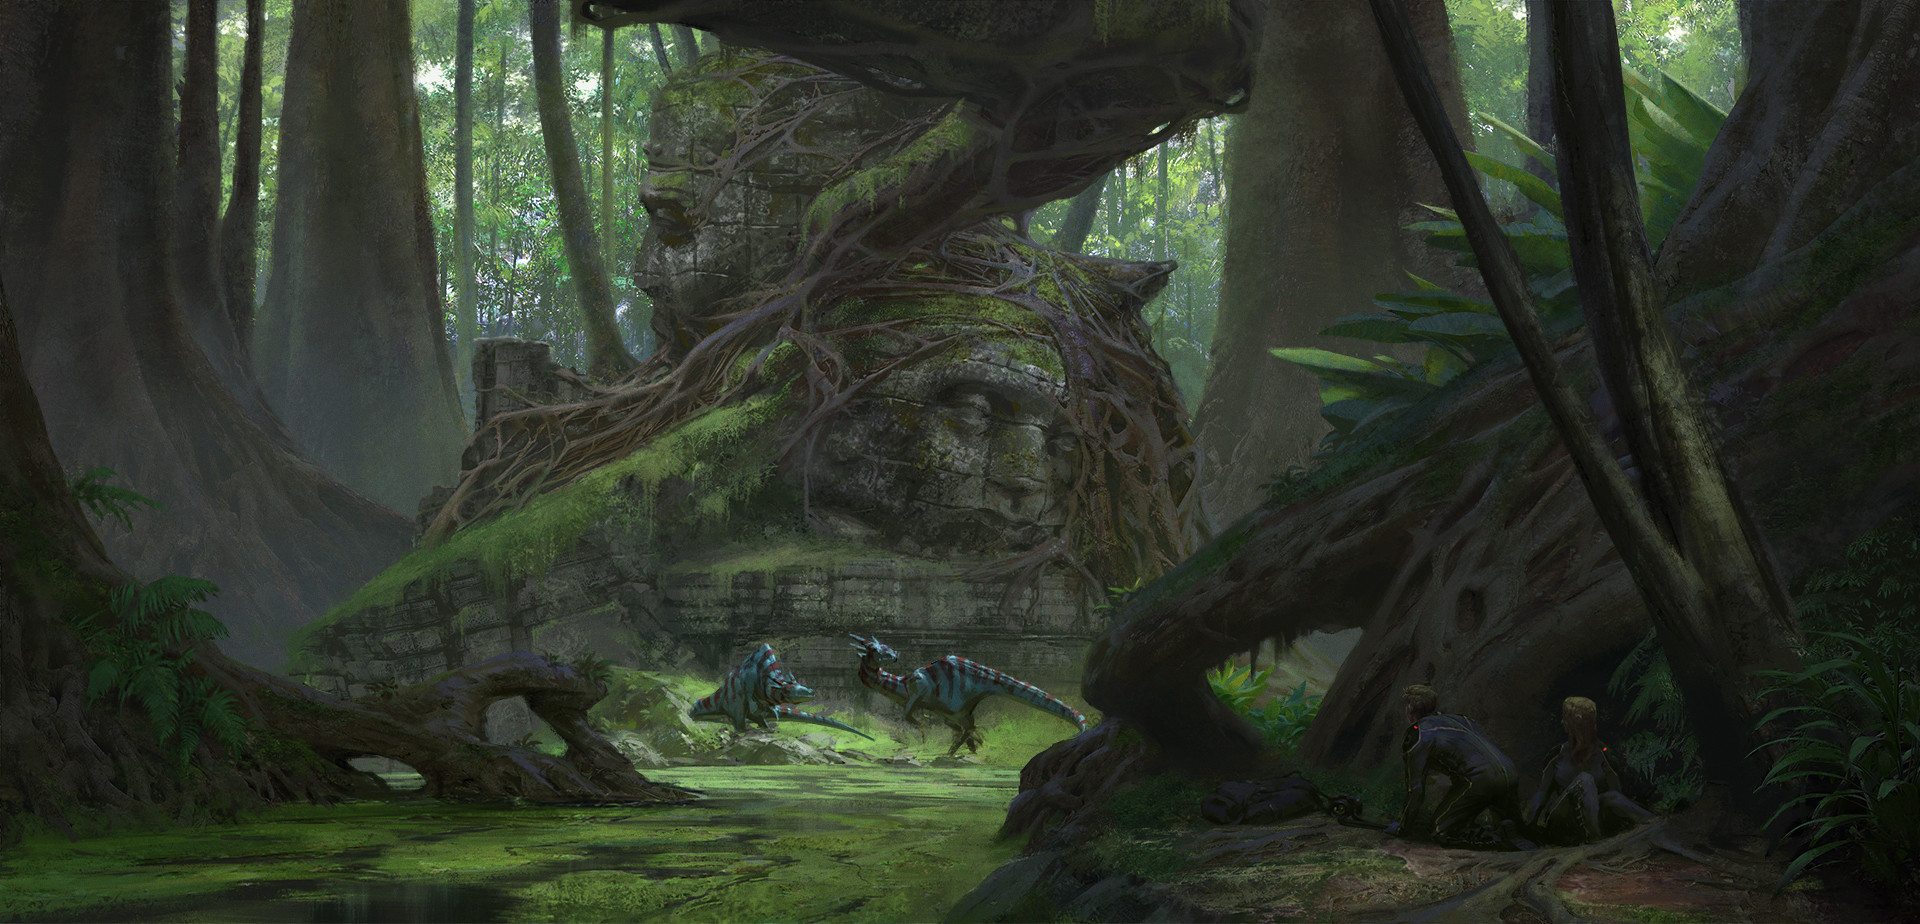 Klaus pillon klauspillon dinojungle final